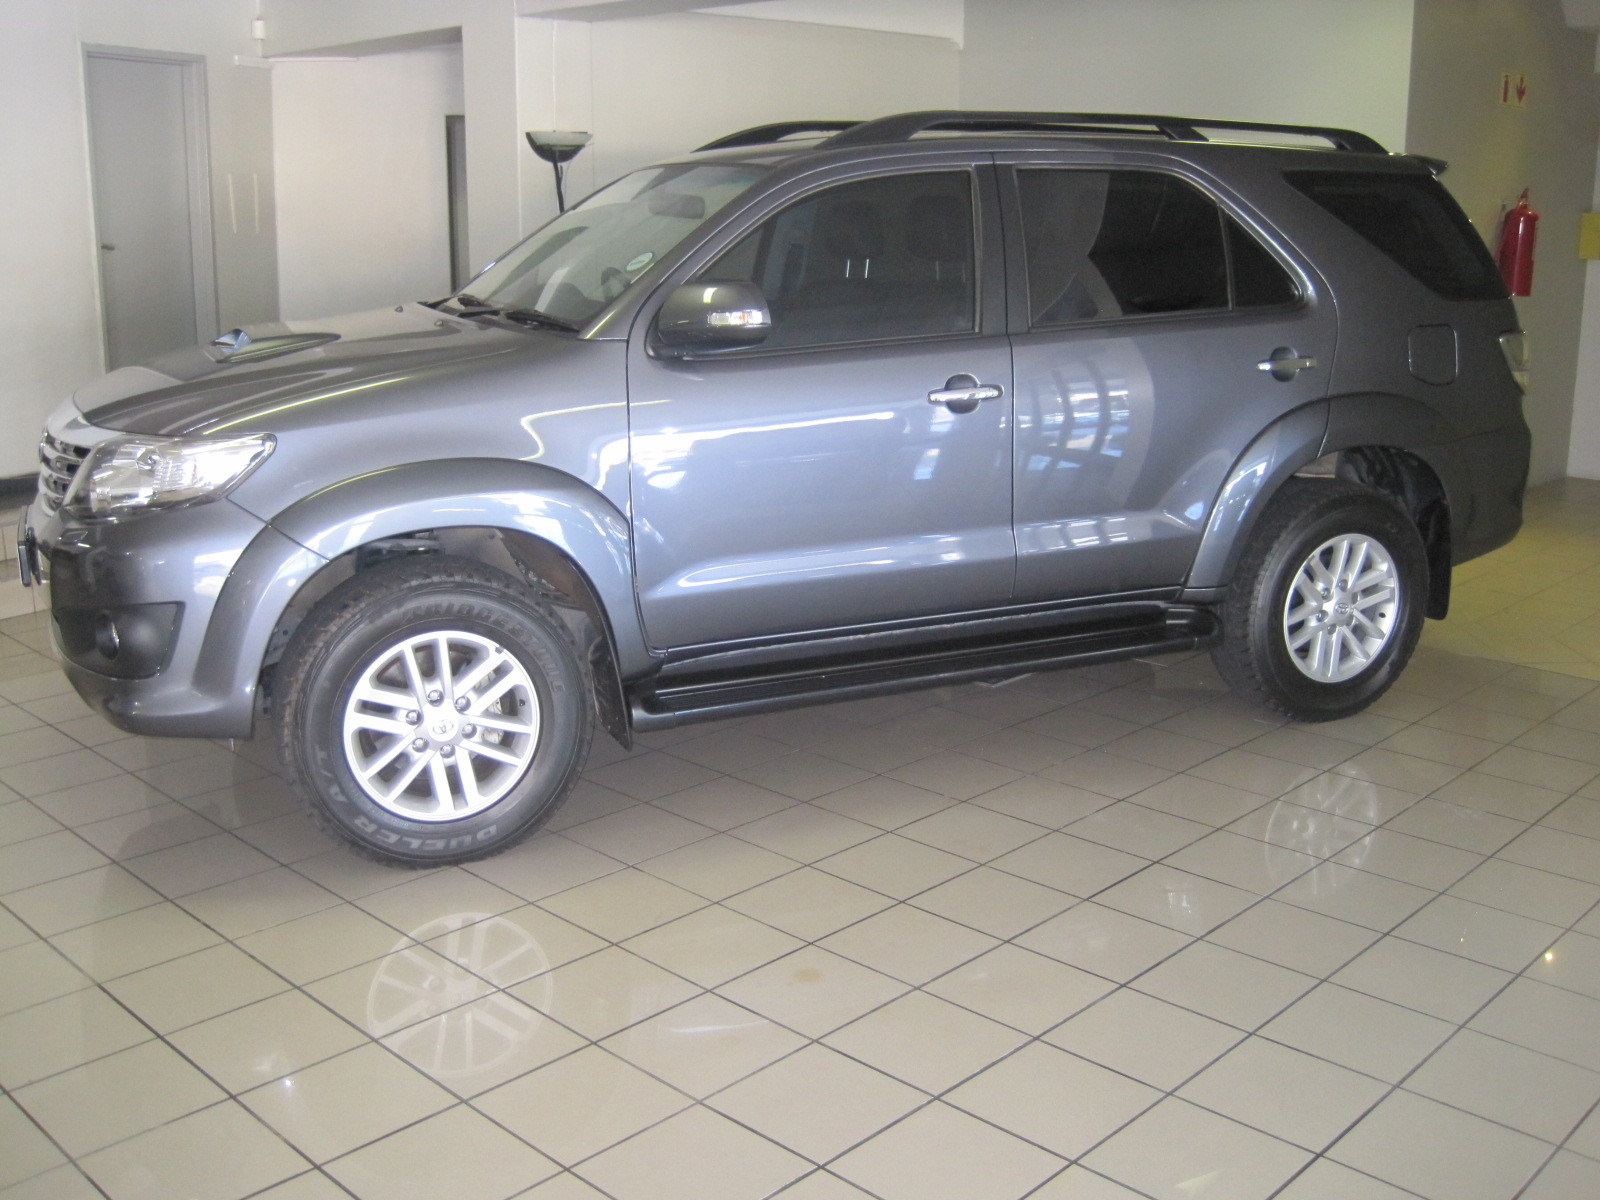 Car Sale Olx Awesome Used and New Hyundai Gumtree Used Vehicles for Sale Cars Olx Cars